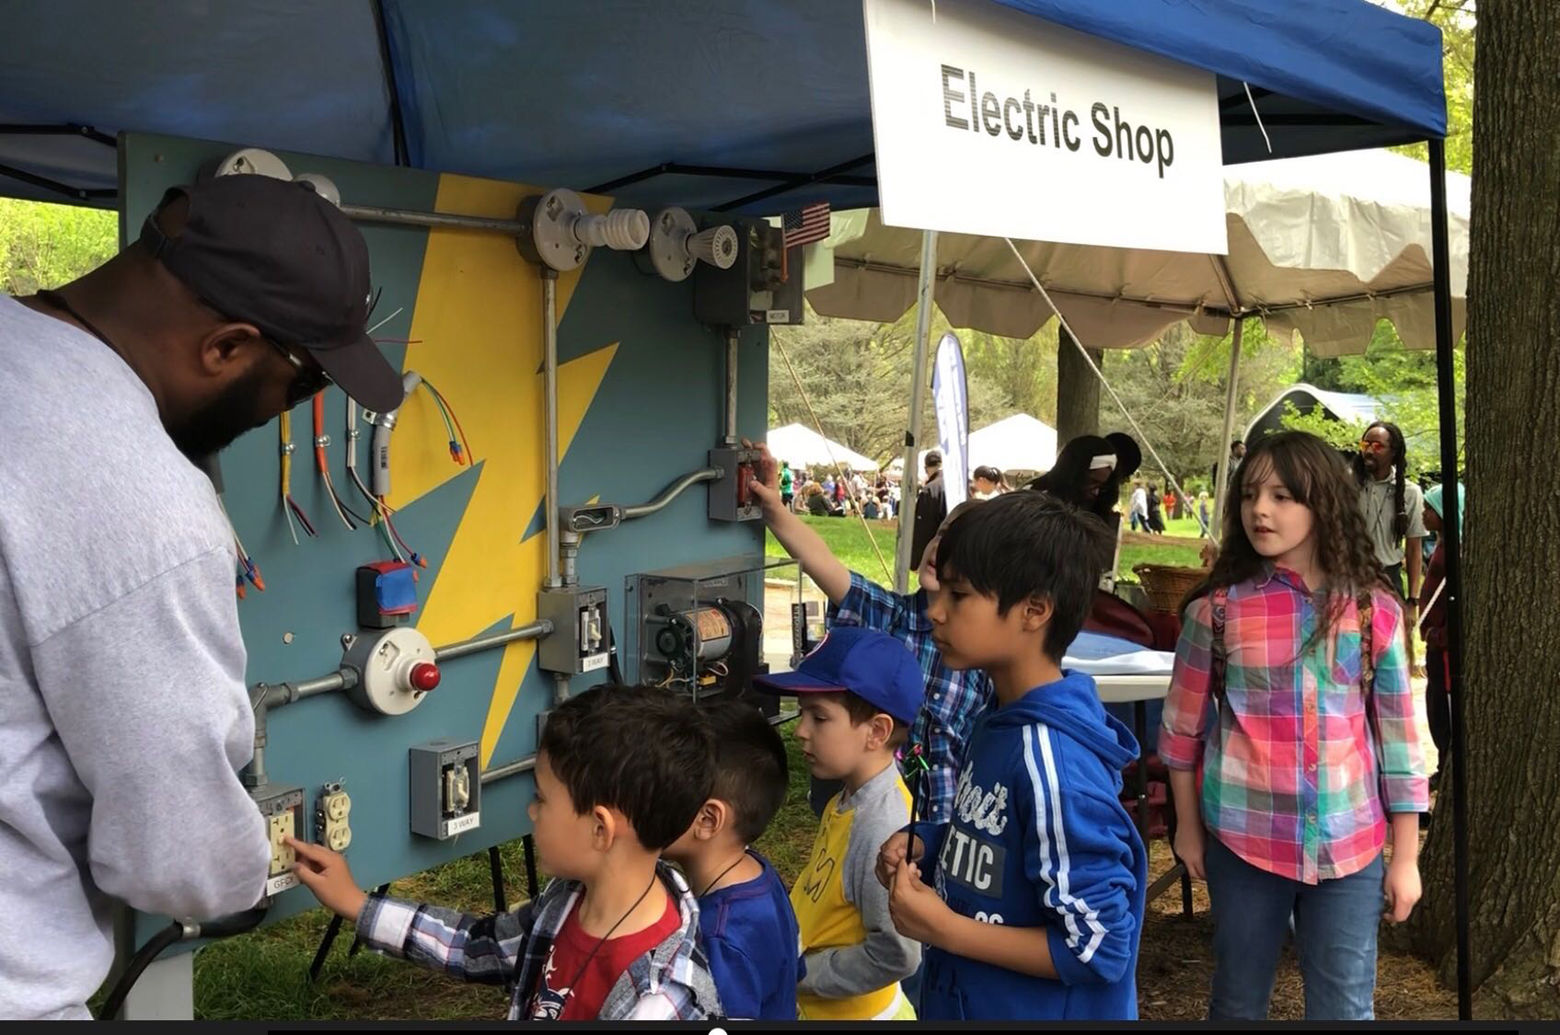 Darren Moody of the Smithsonian Institution taught children about electricity. (WTOP/Kristi King)